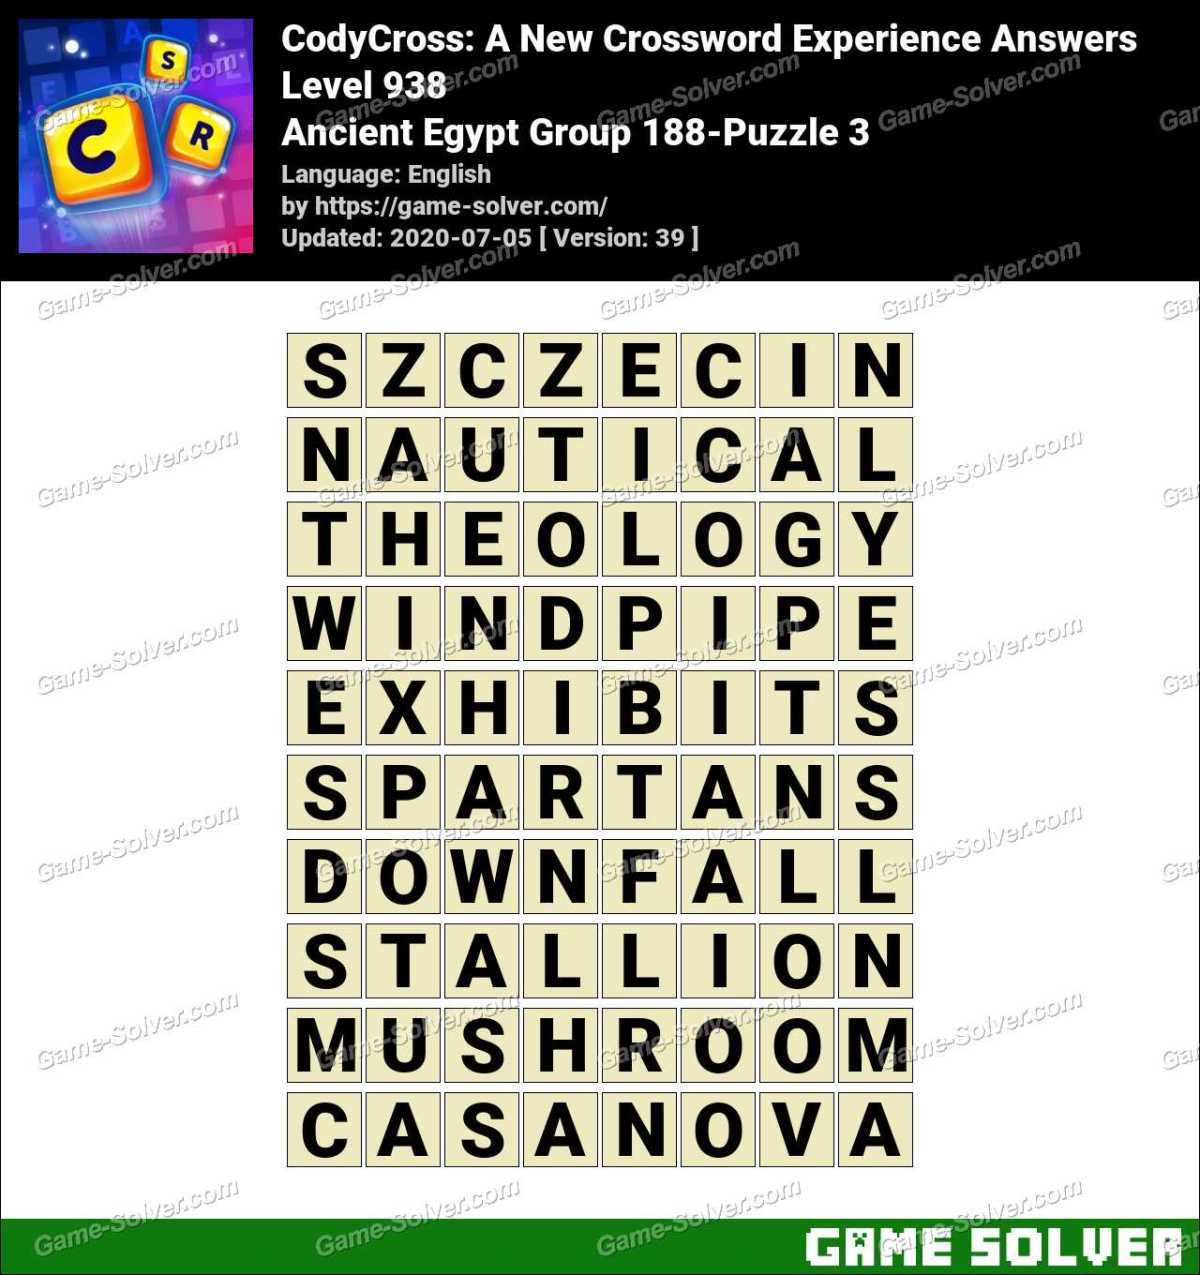 CodyCross Ancient Egypt Group 188-Puzzle 3 Answers